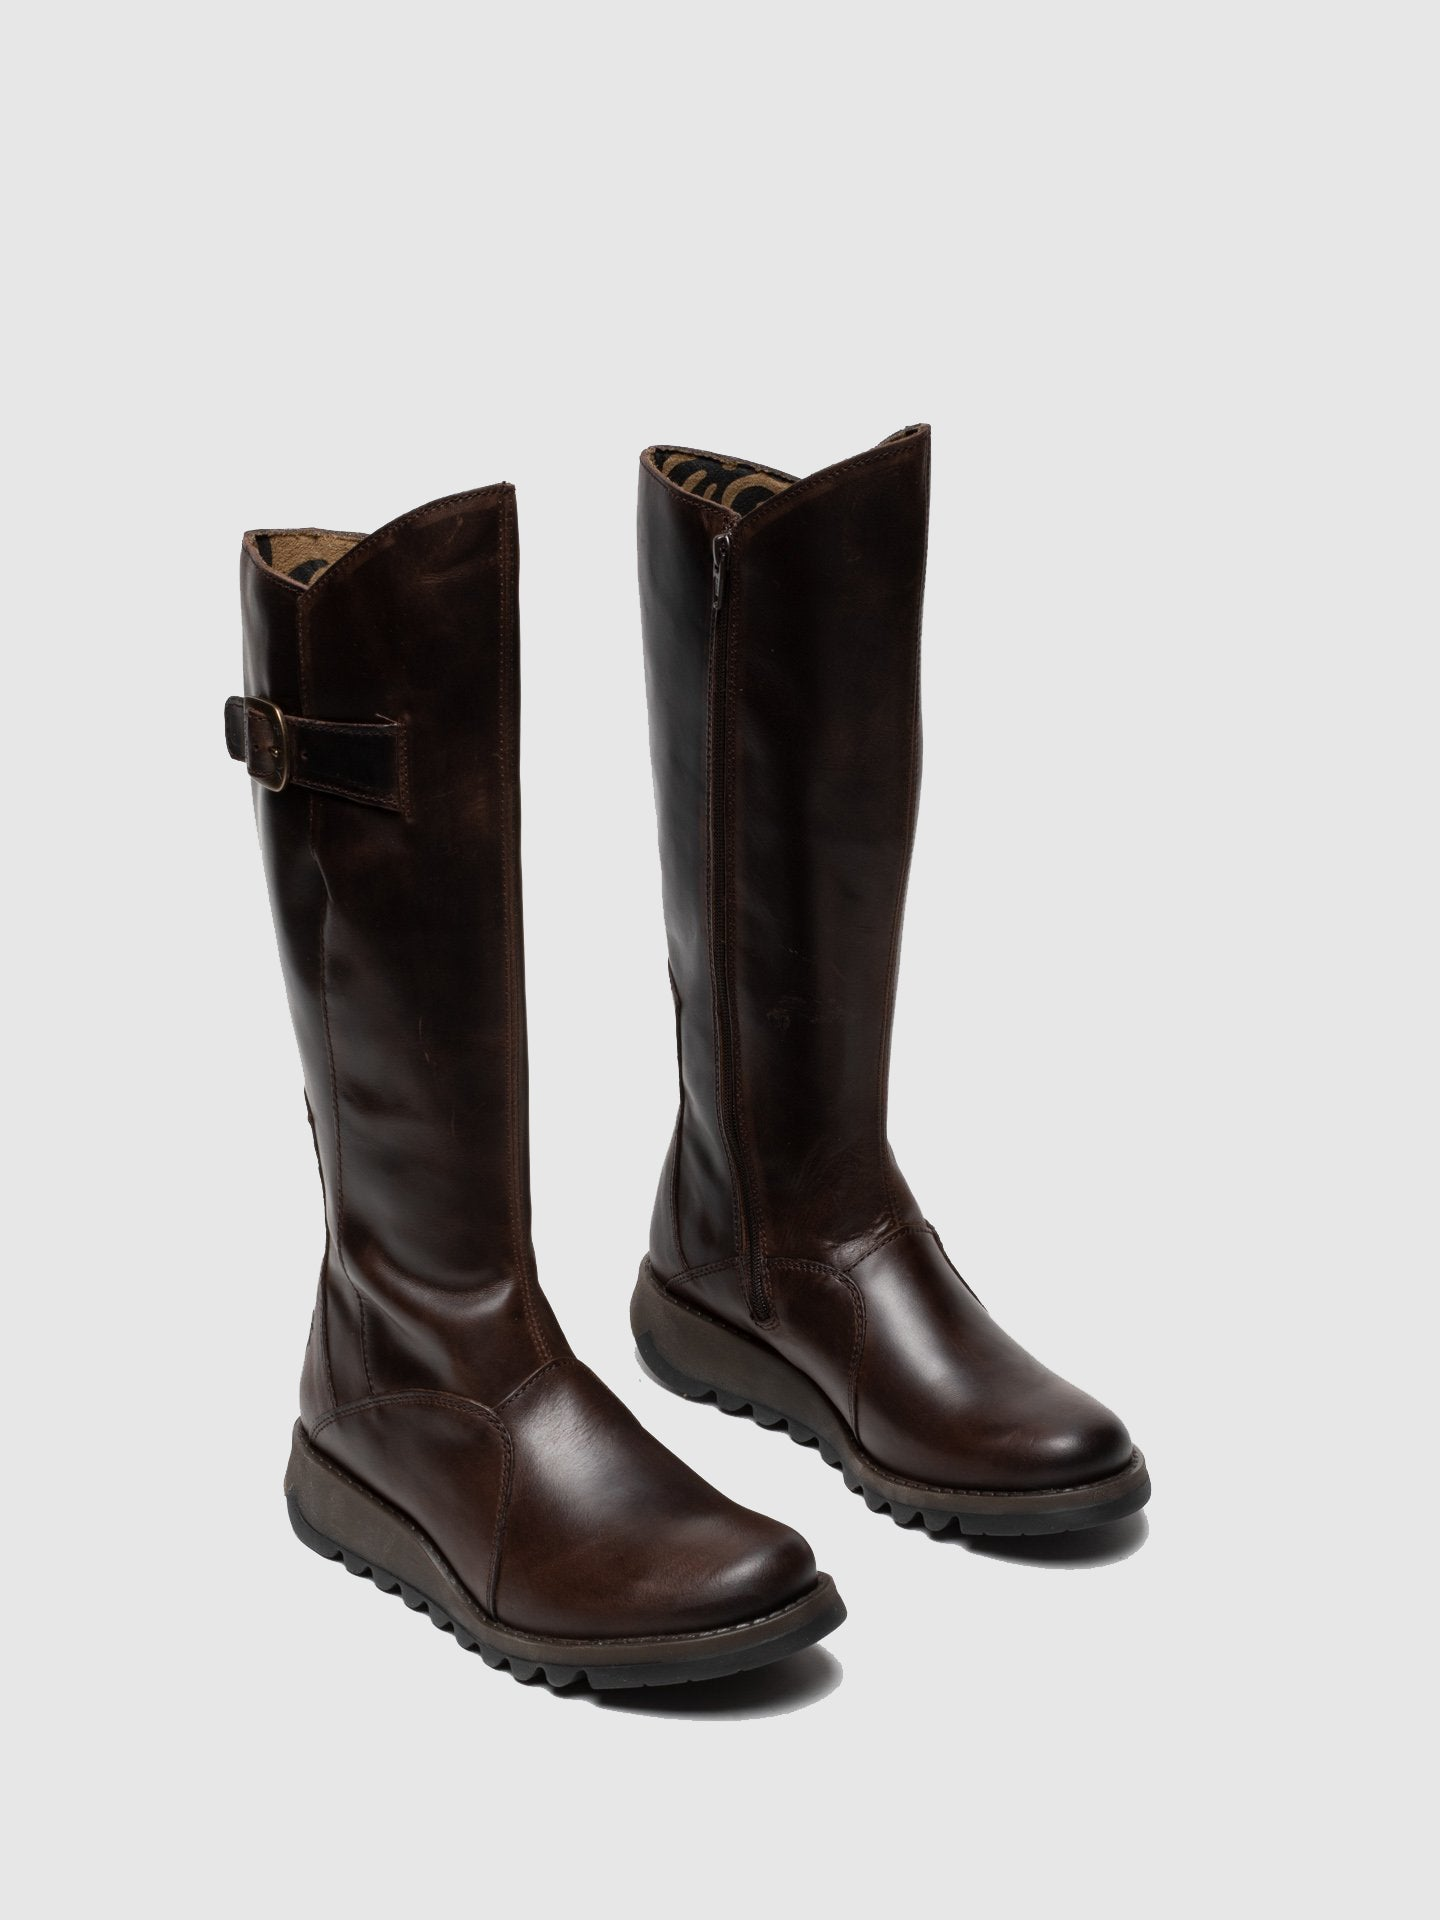 Fly London Brown Leather Zip Up Boots